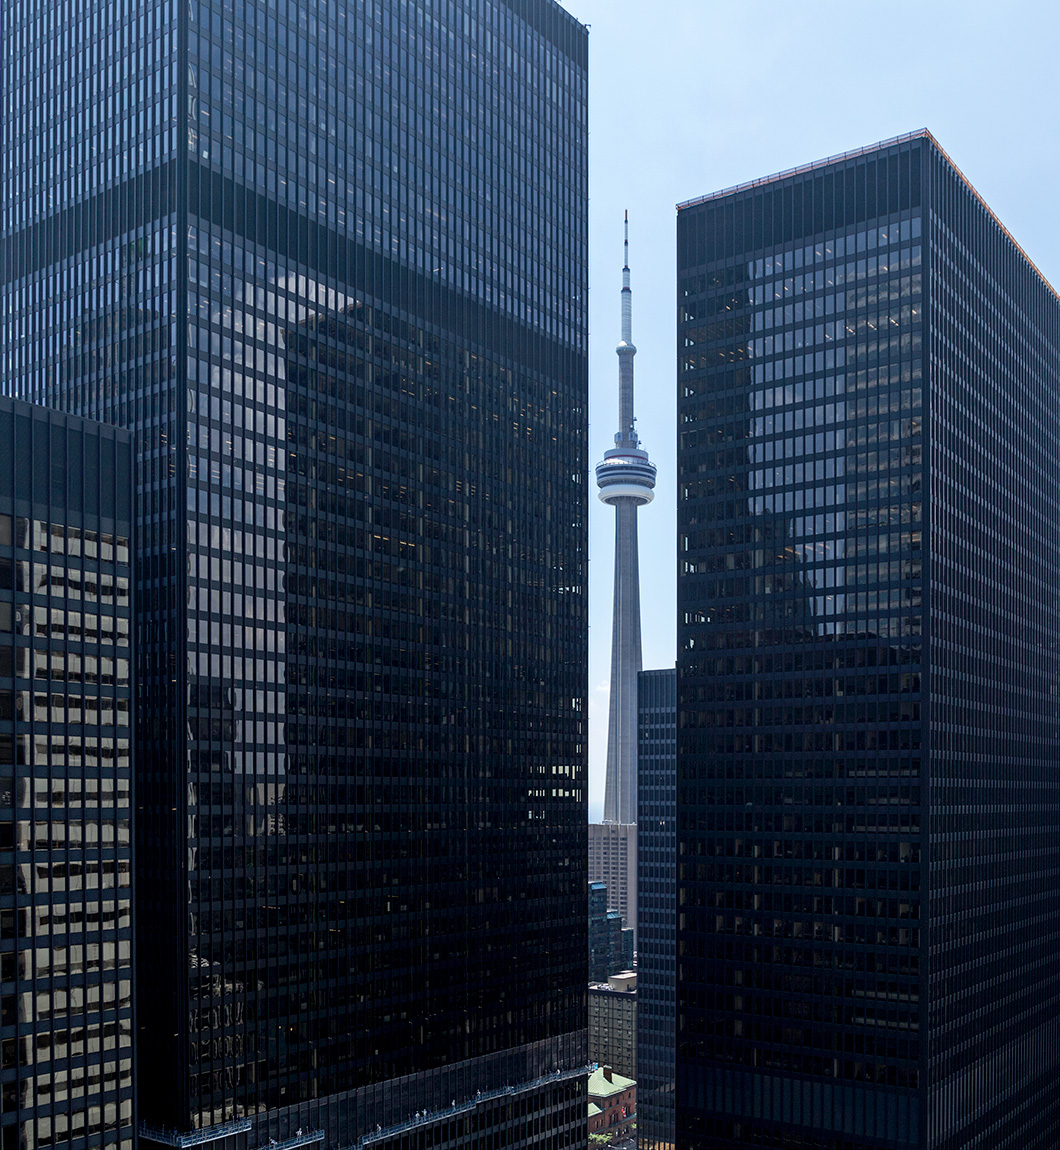 20160716. Sneaking a peek at Toronto's CN Tower through Mies van